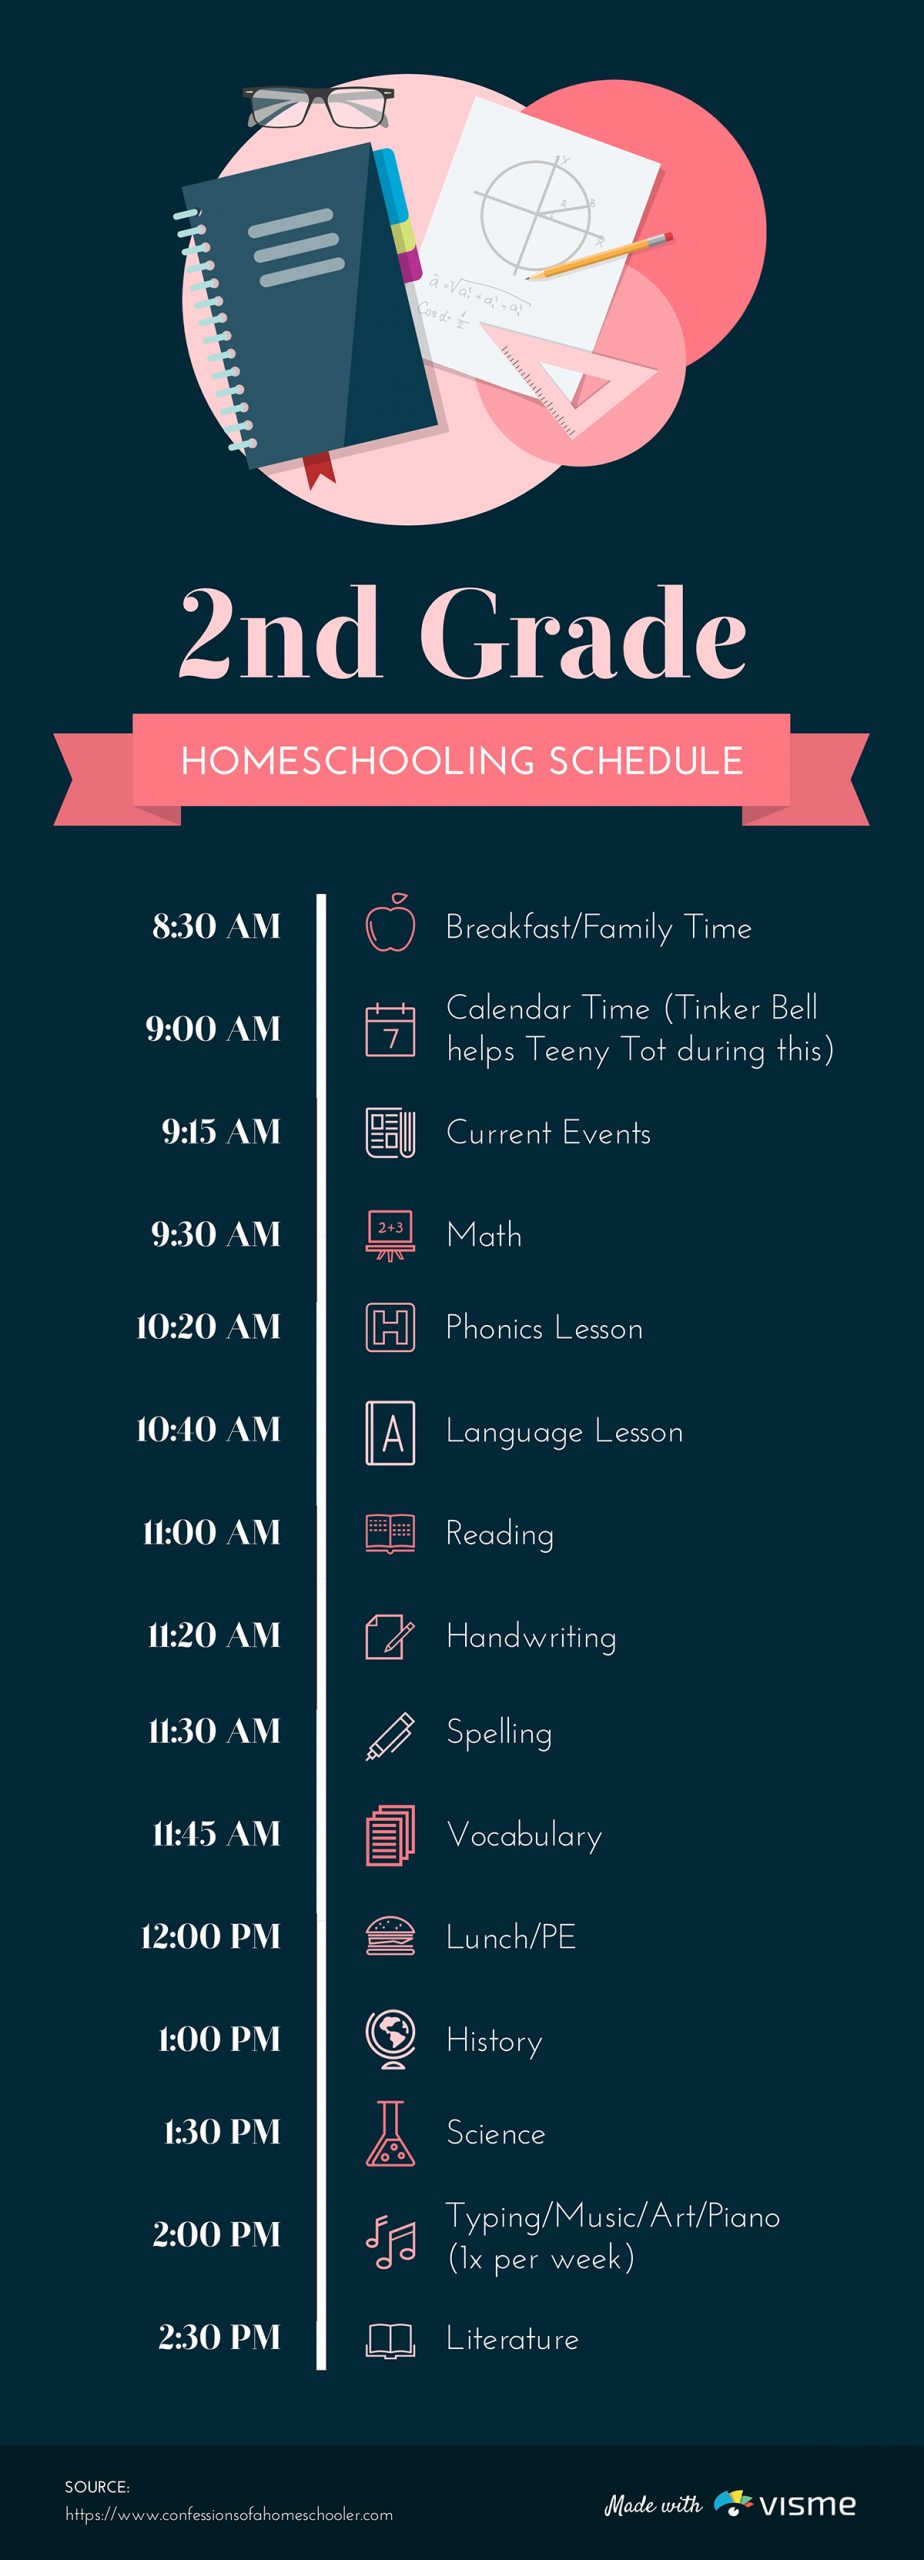 A schedule timeline template available to customize in Visme.